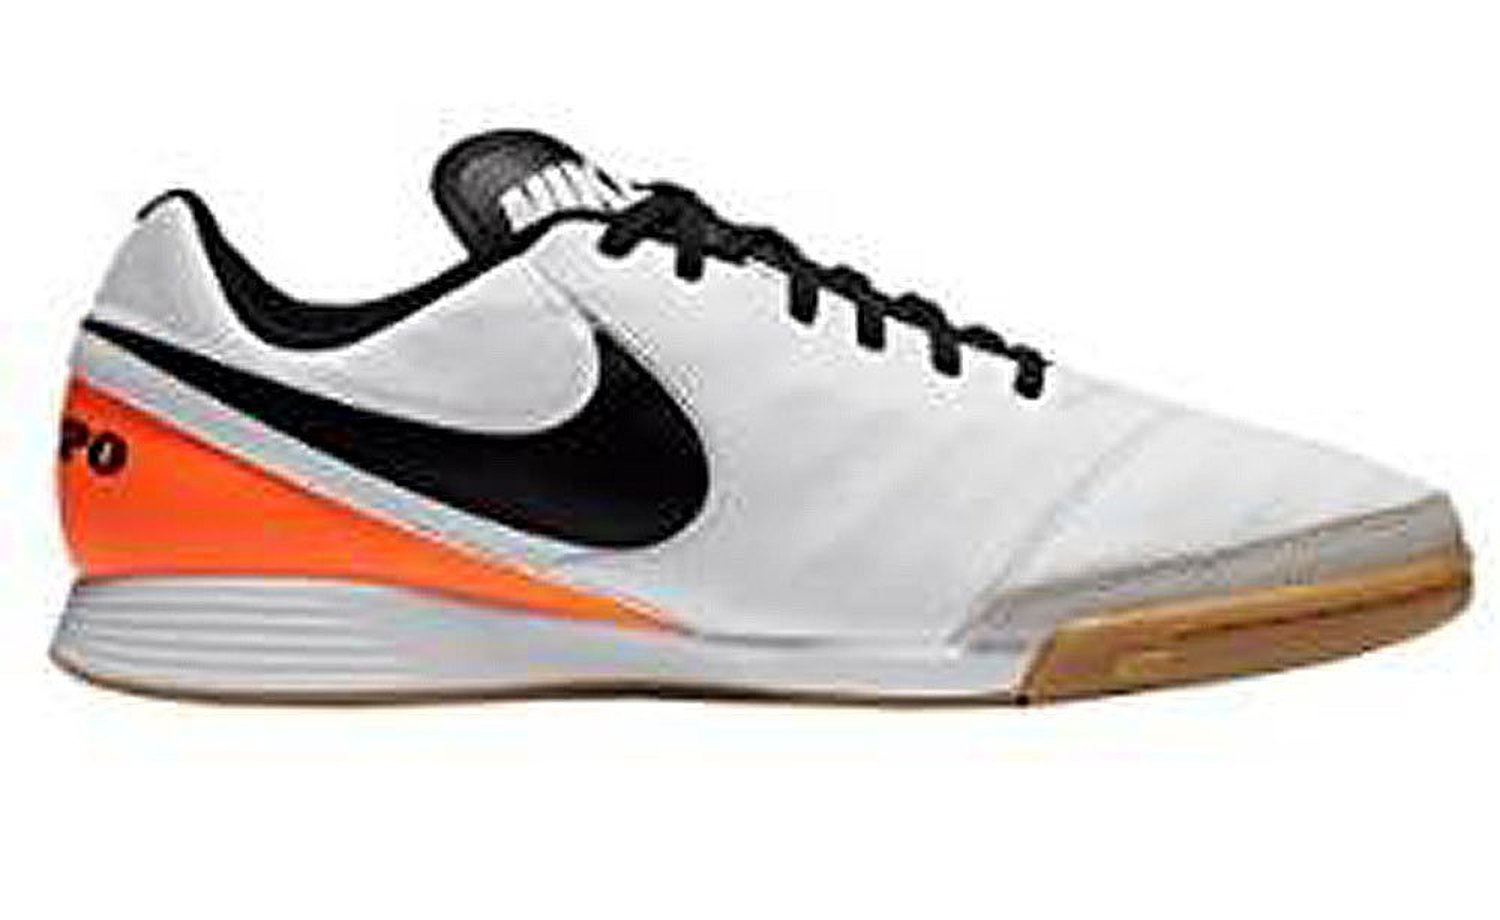 d4270dff8 Get Quotations · Nike Tiempo Genio II Leather IC Indoor Soccer Shoes